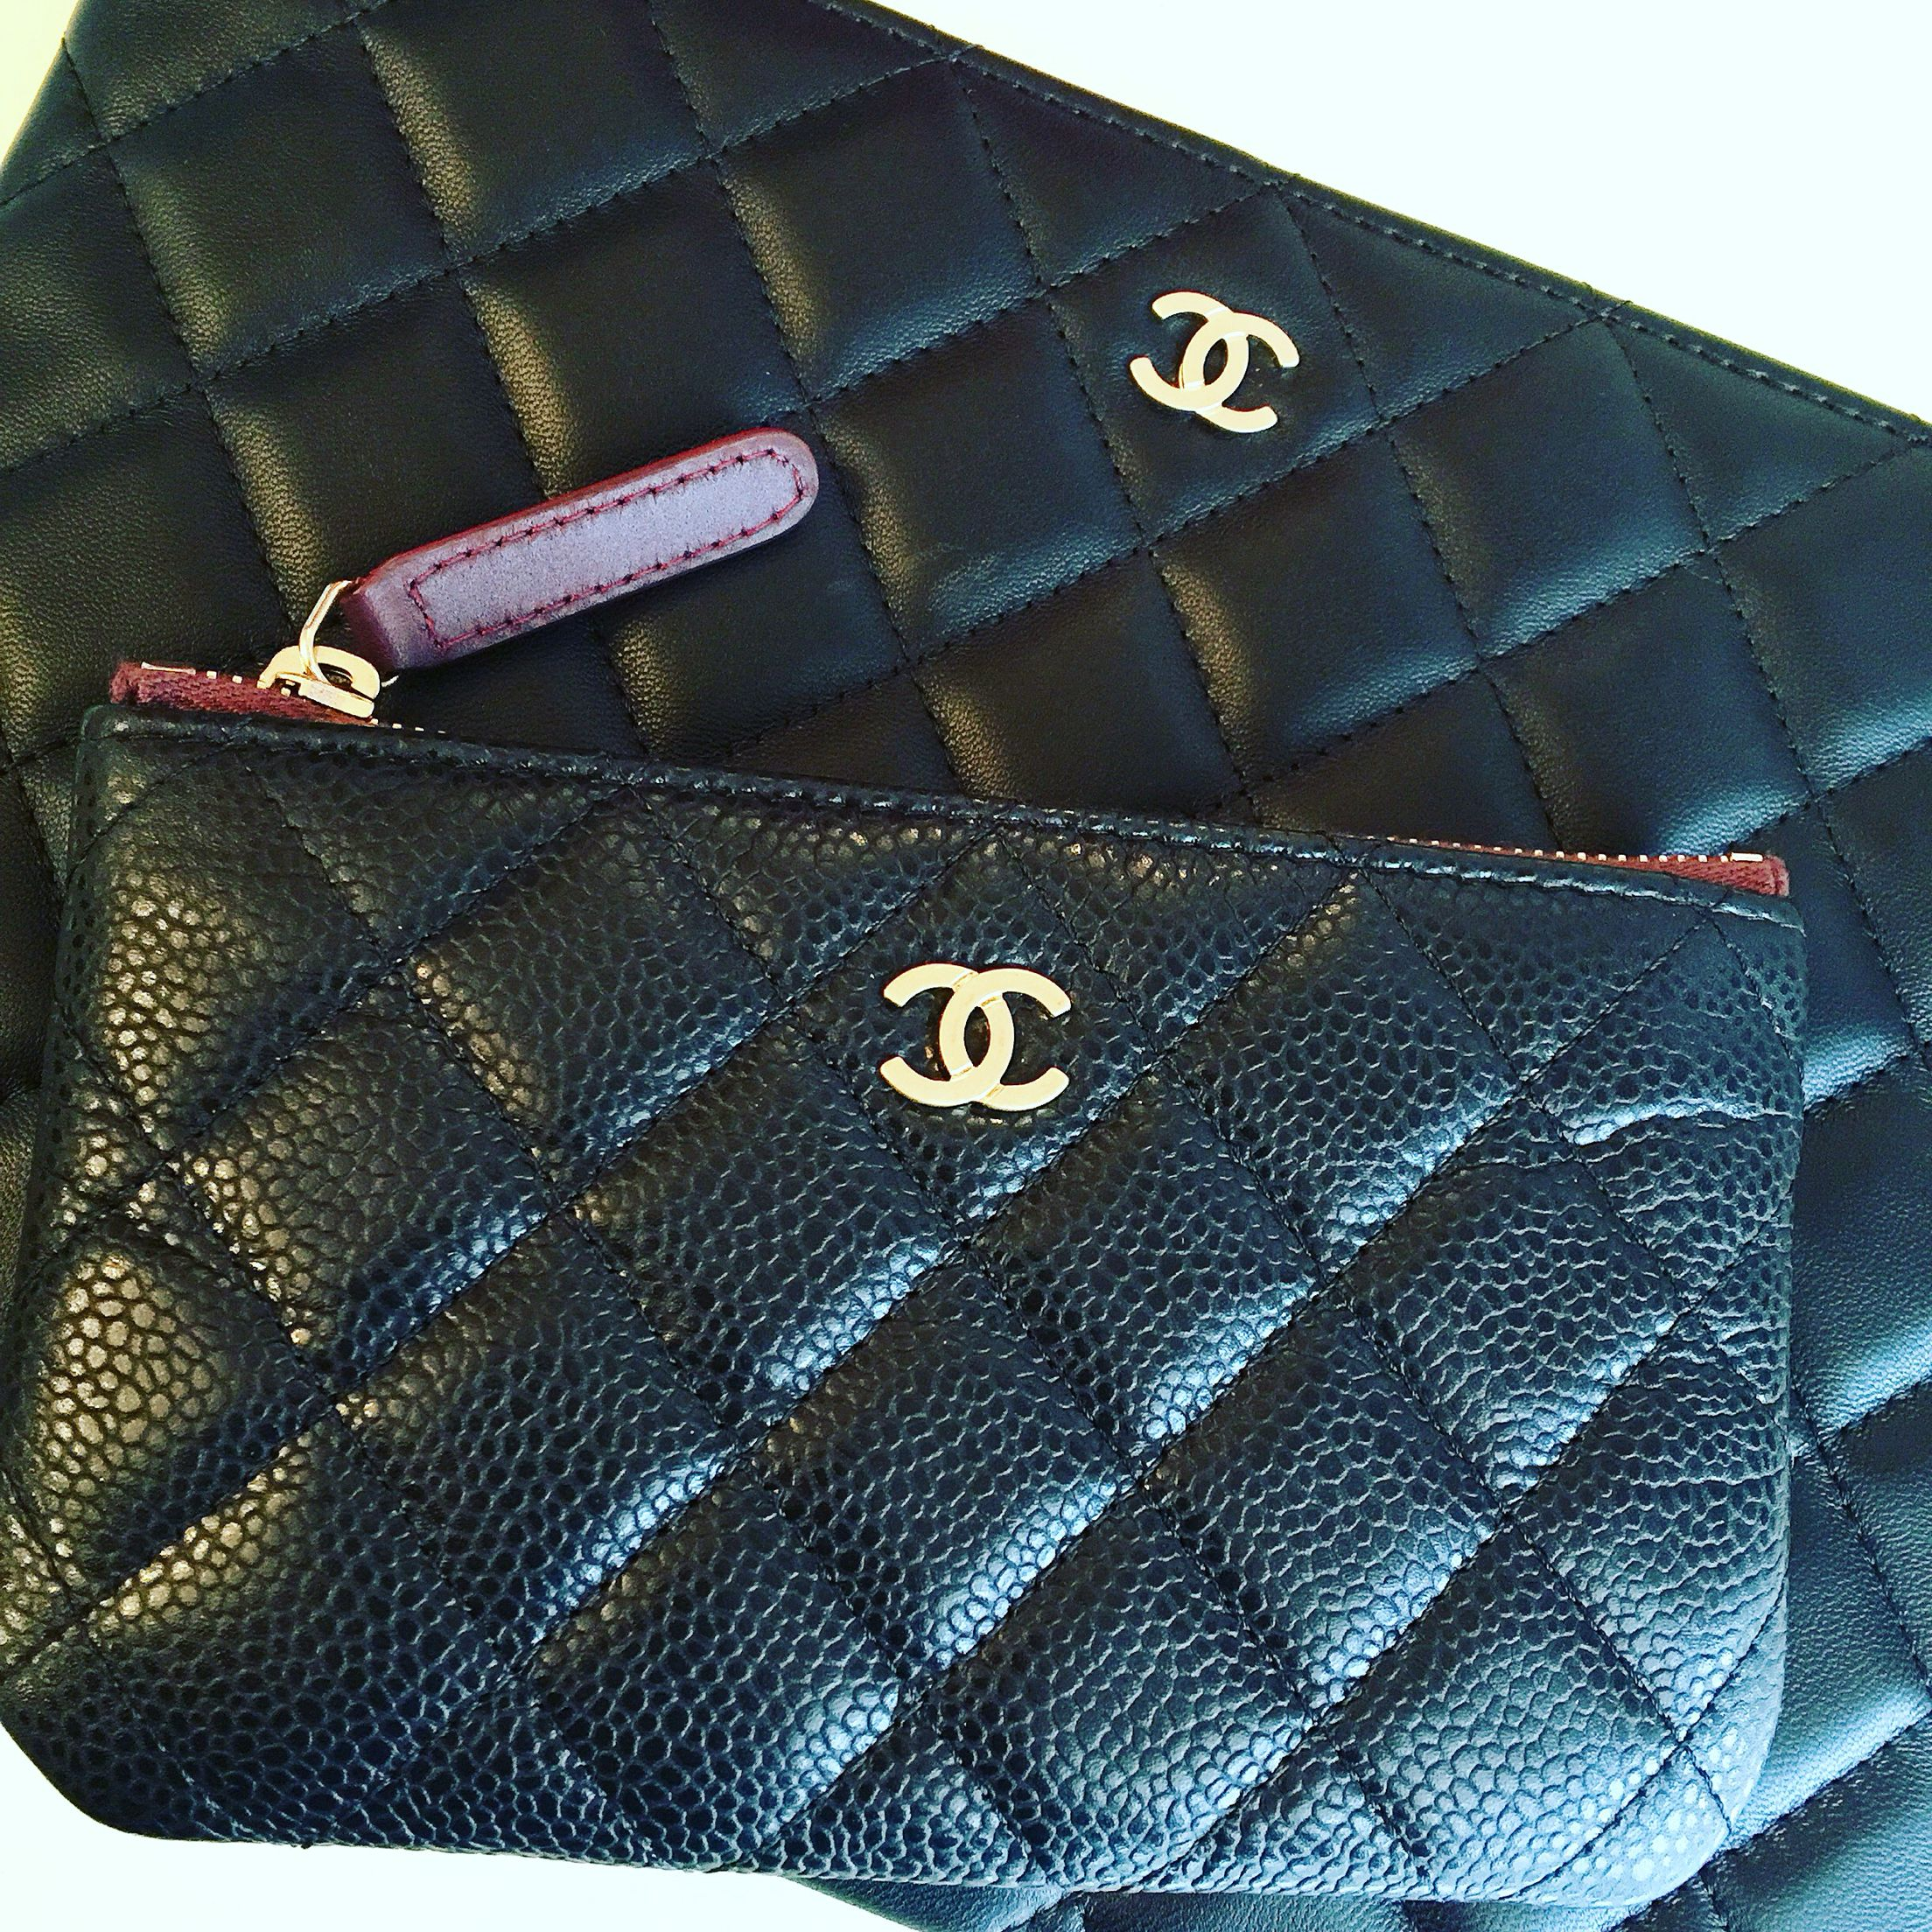 Chanel O Case   SMALL LEATHER GOODS   Pinterest   Chanel, Chanel ... fc836b5971